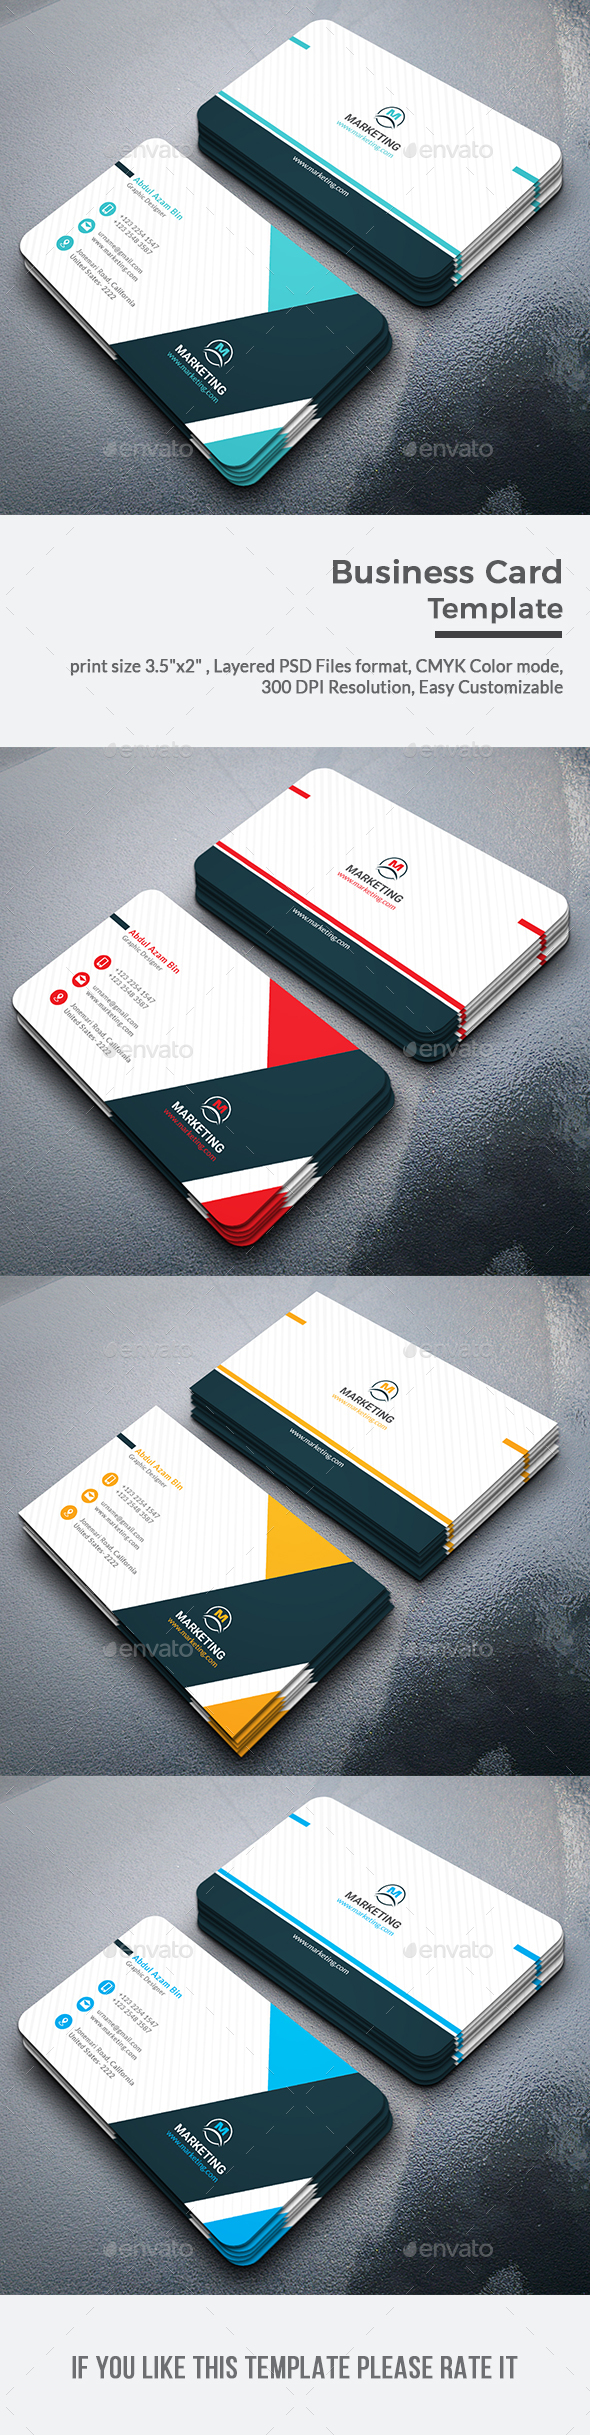 Microsoft Templates Business Cards